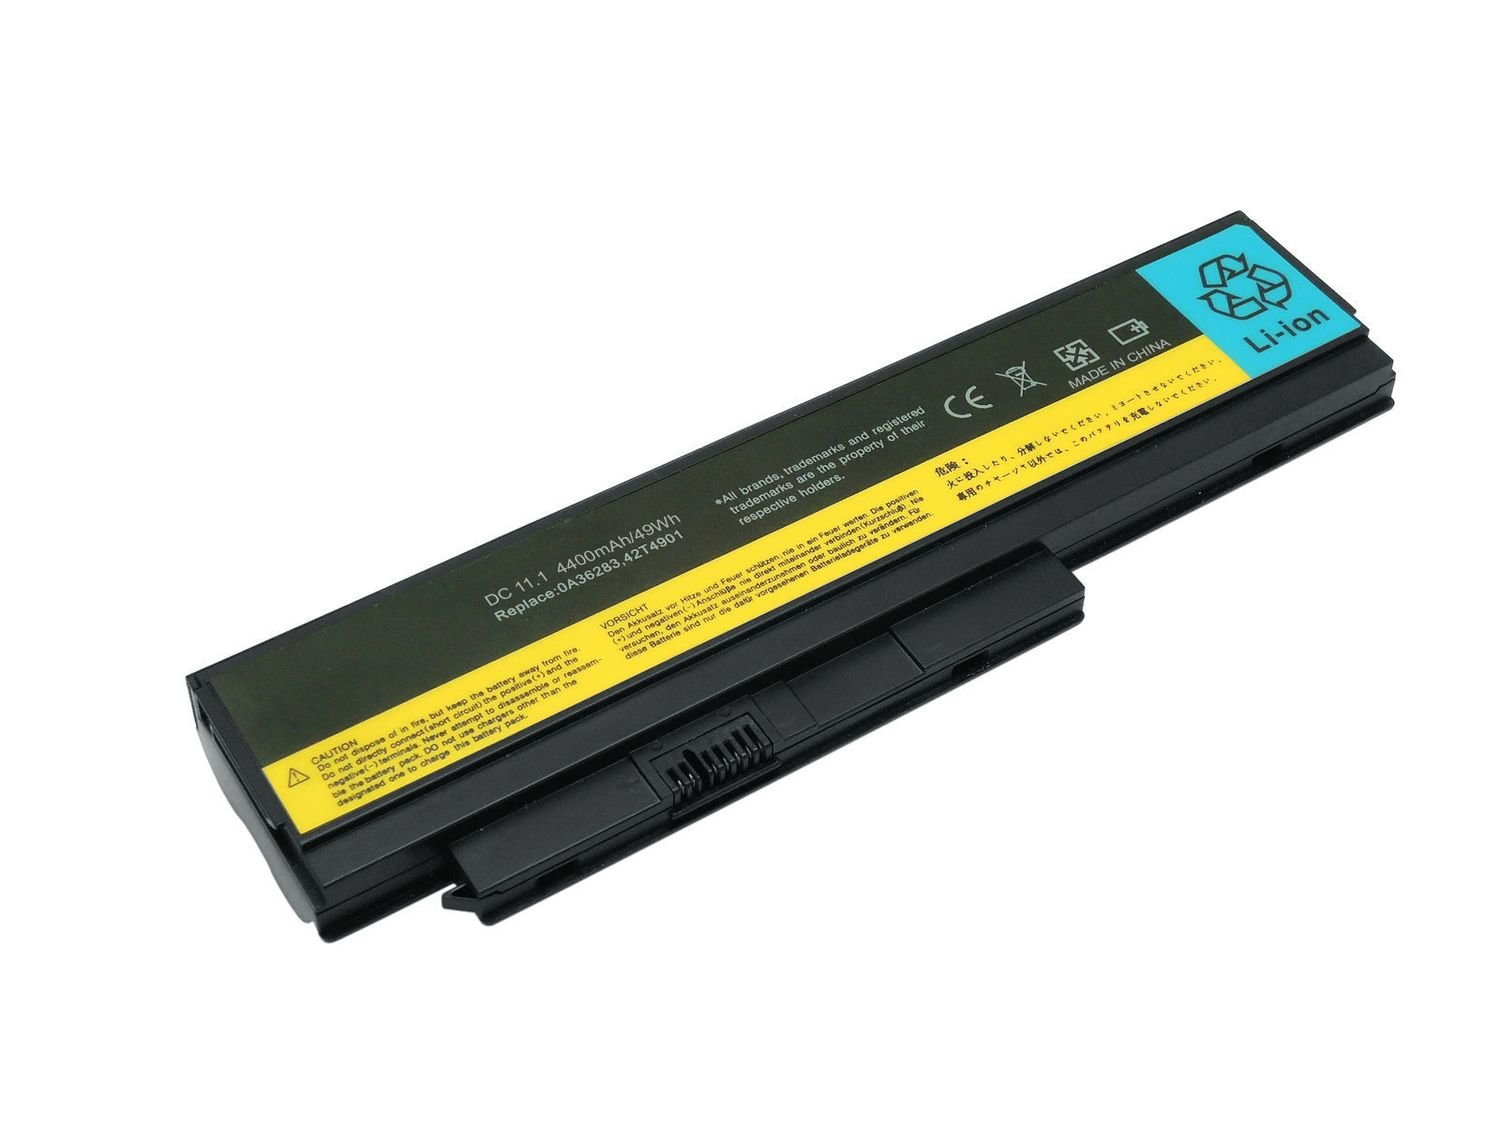 Lenovo thinkpad 0A36281 0A36282 0A36283 compatible laptop battery